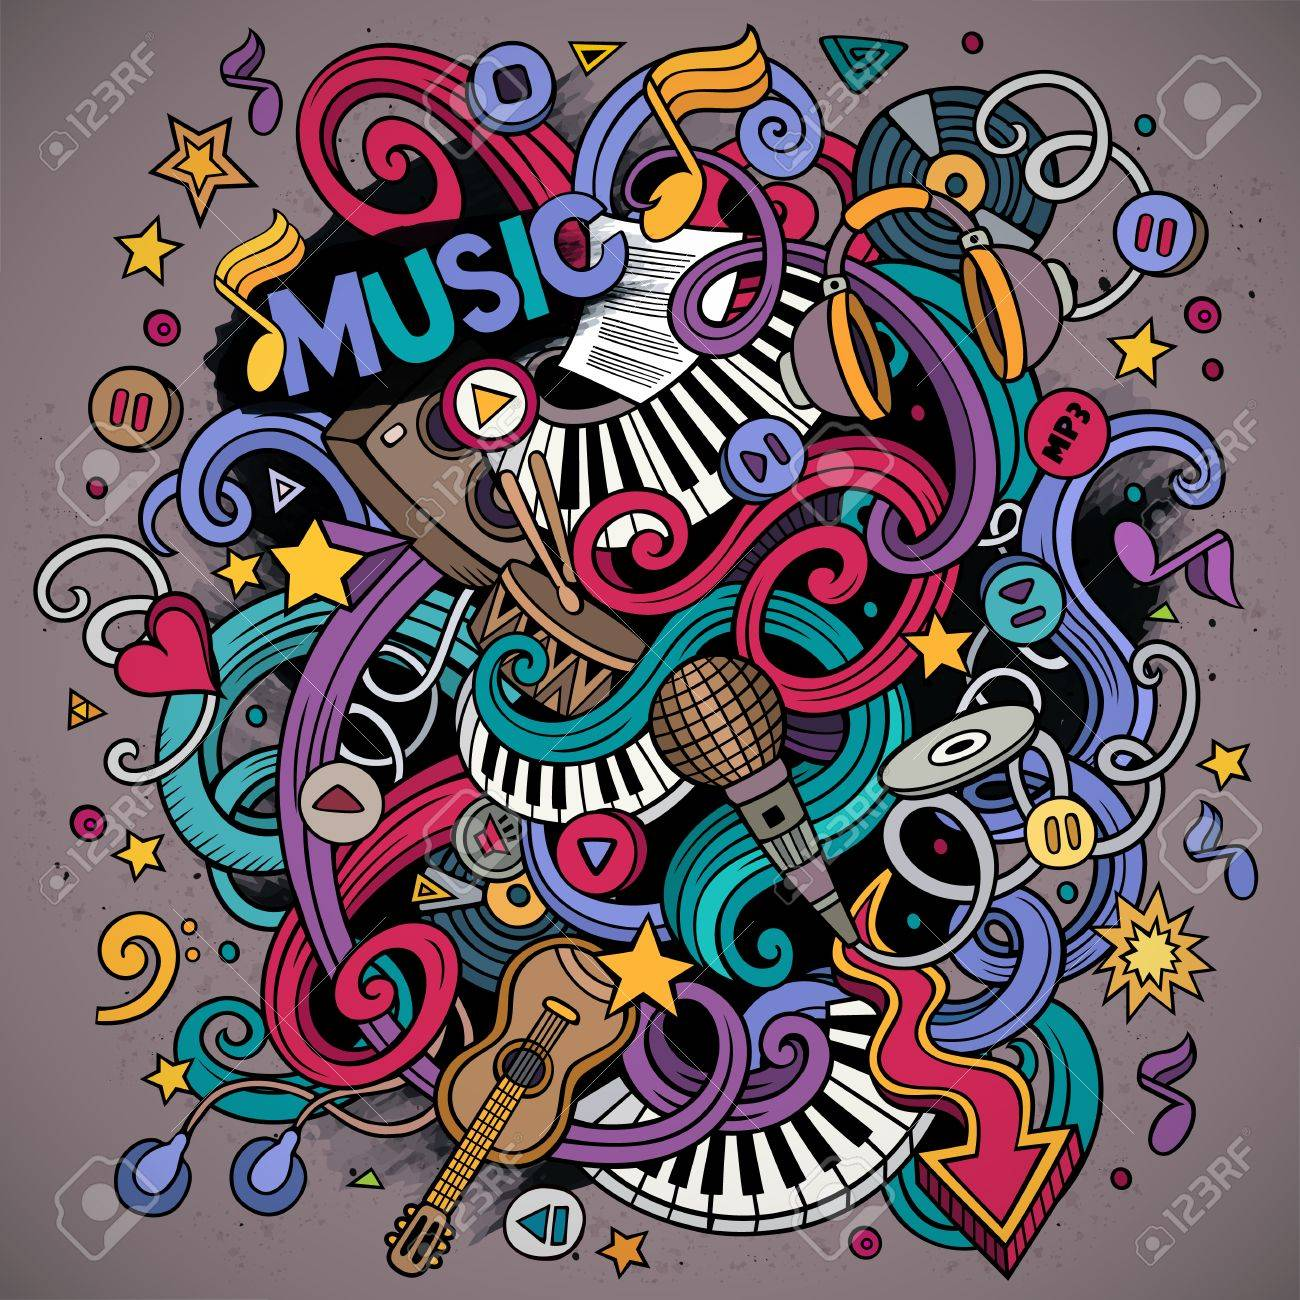 Cartoon hand-drawn doodles Musical illustration. Colorful detailed, with lots of objects vector background - 55588474